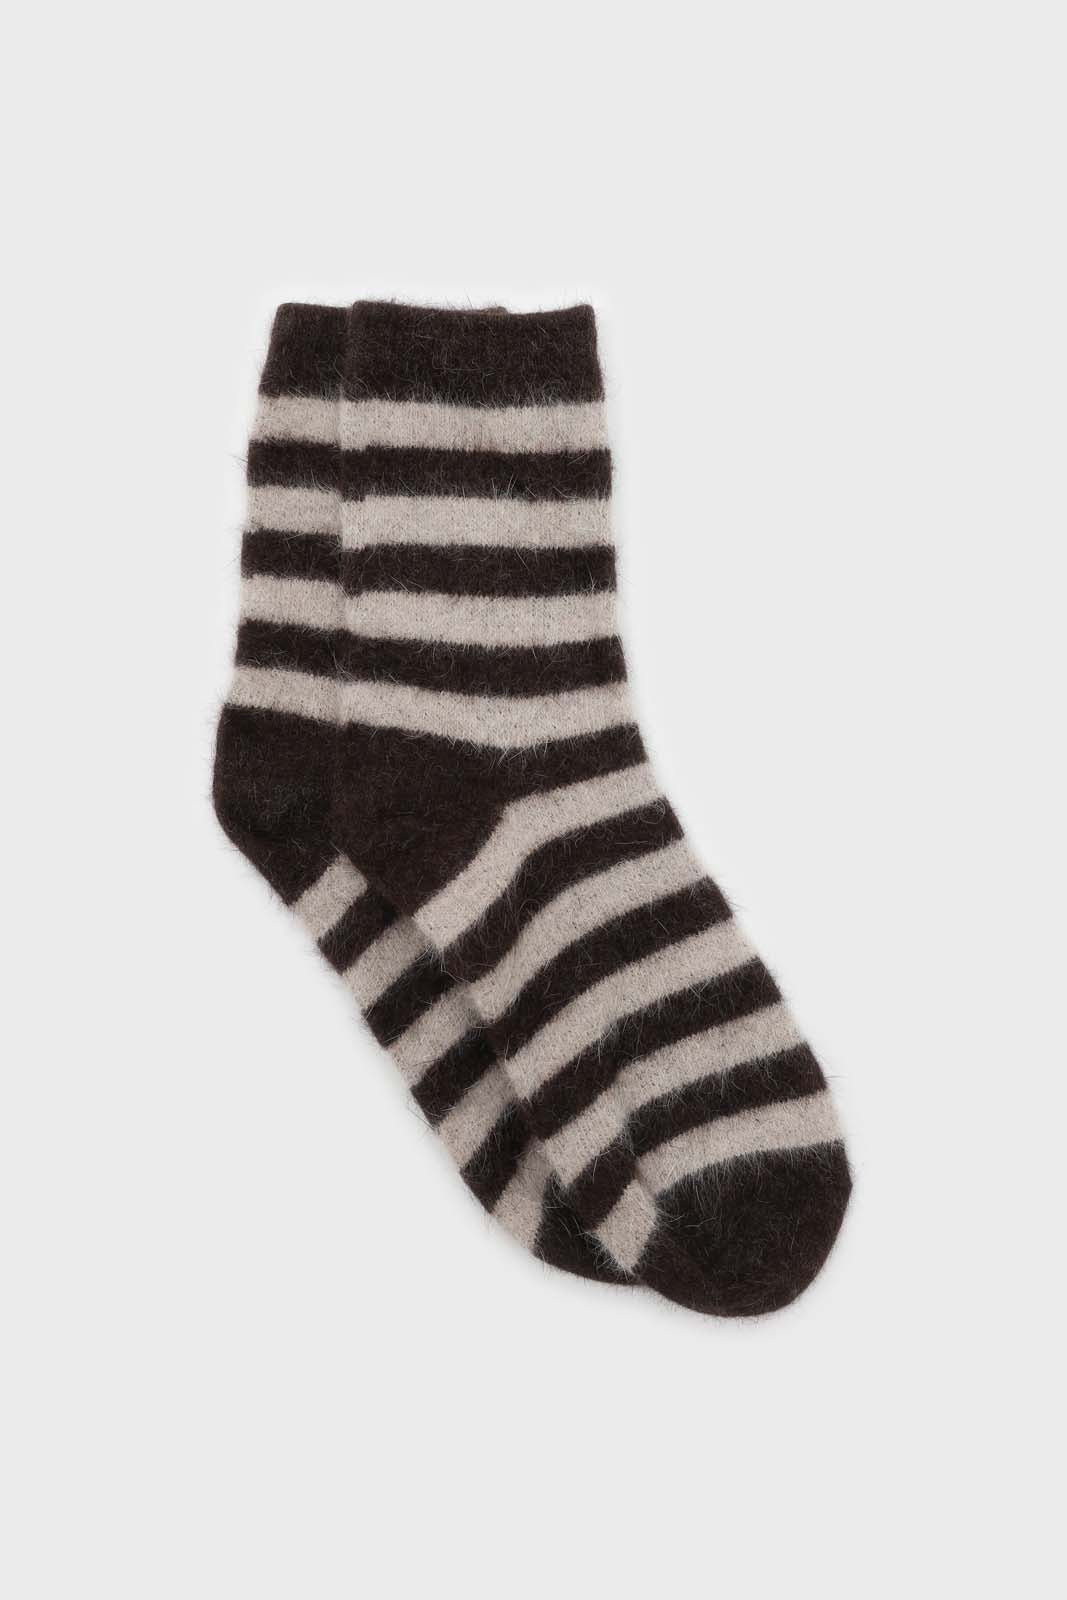 Brown and beige striped angora socks sx